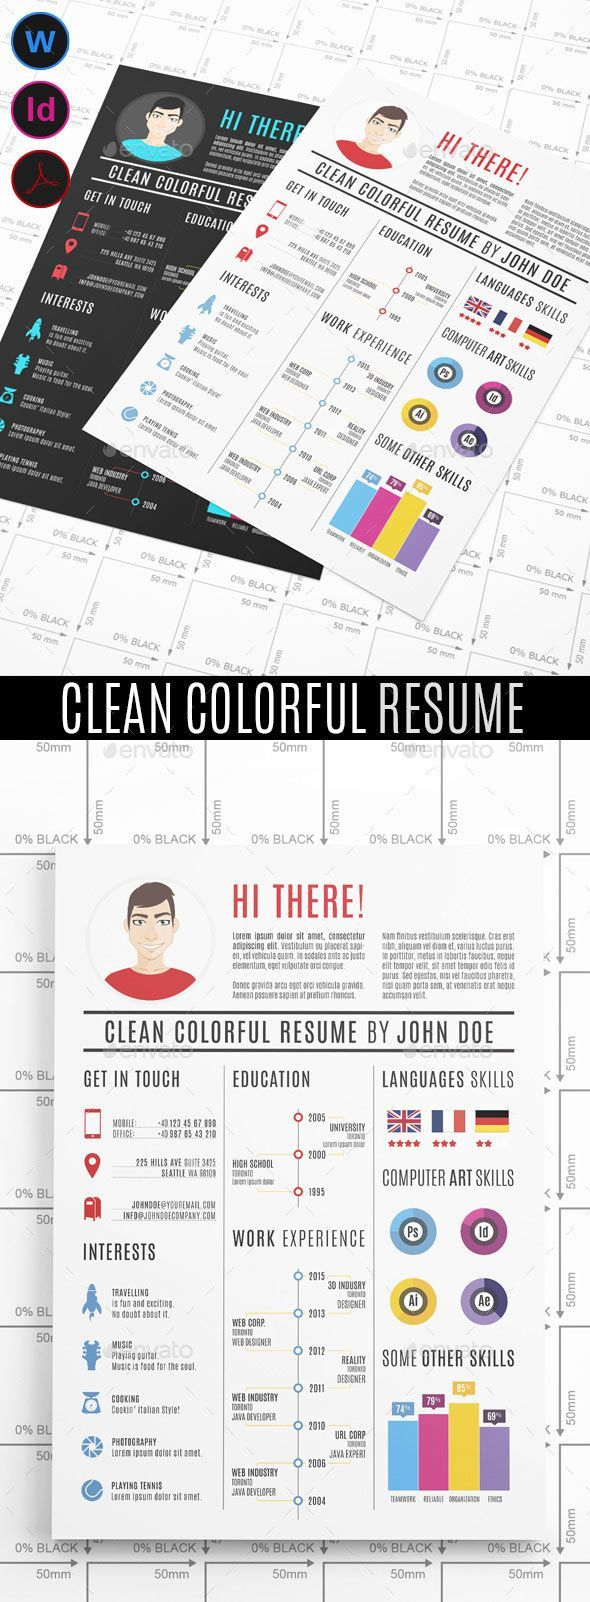 Colorful graphic design resume | Resume | Pinterest | Graphic ...